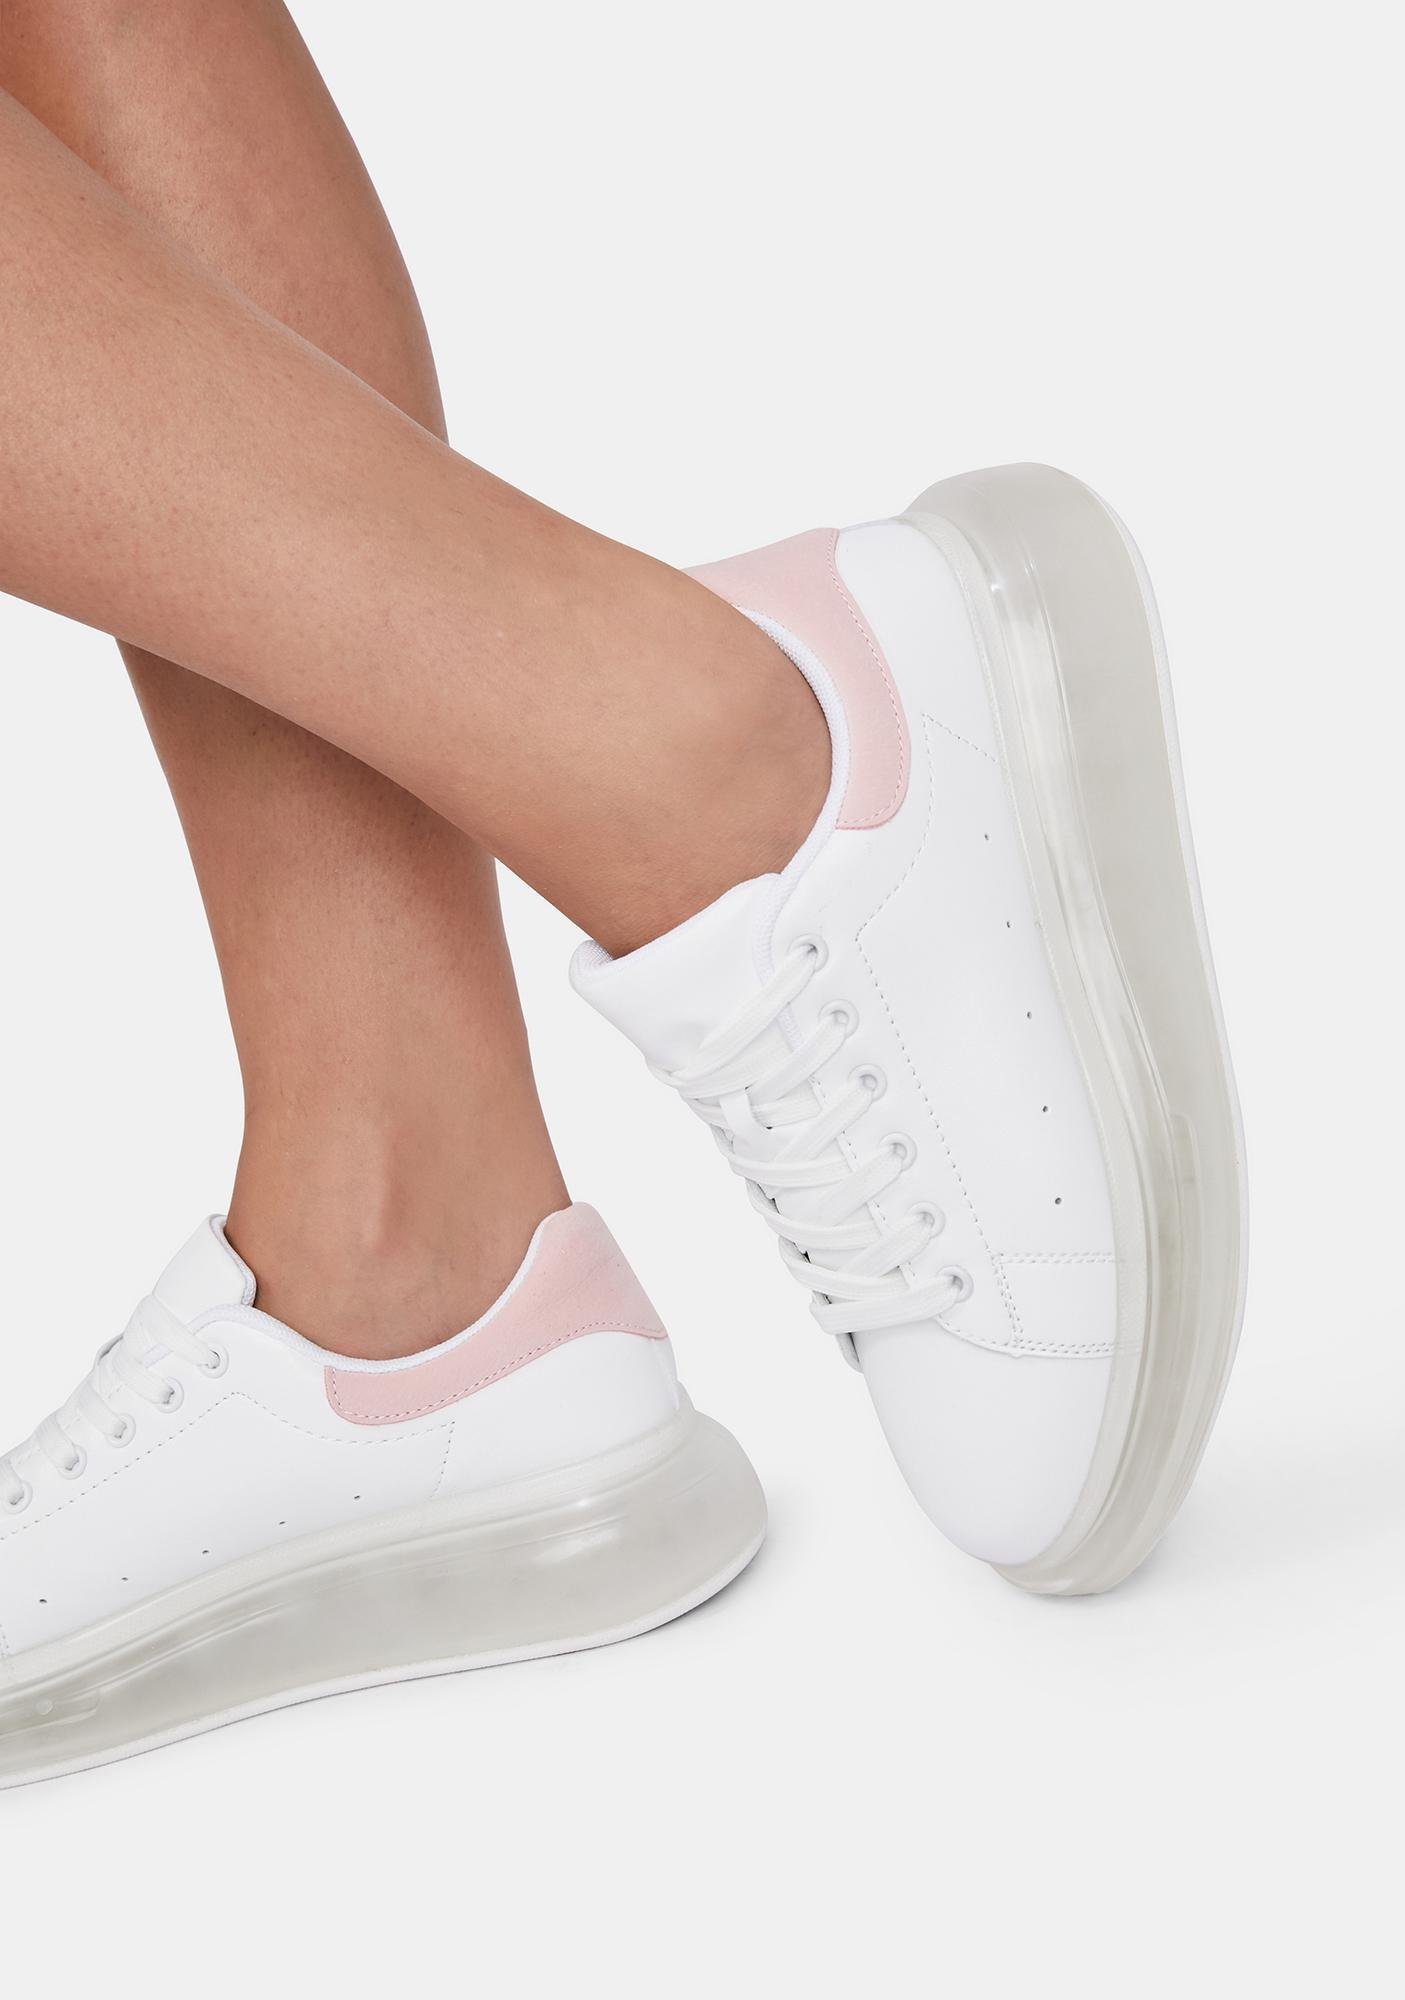 Taffy Clean Sweep Lace Up Sneakers